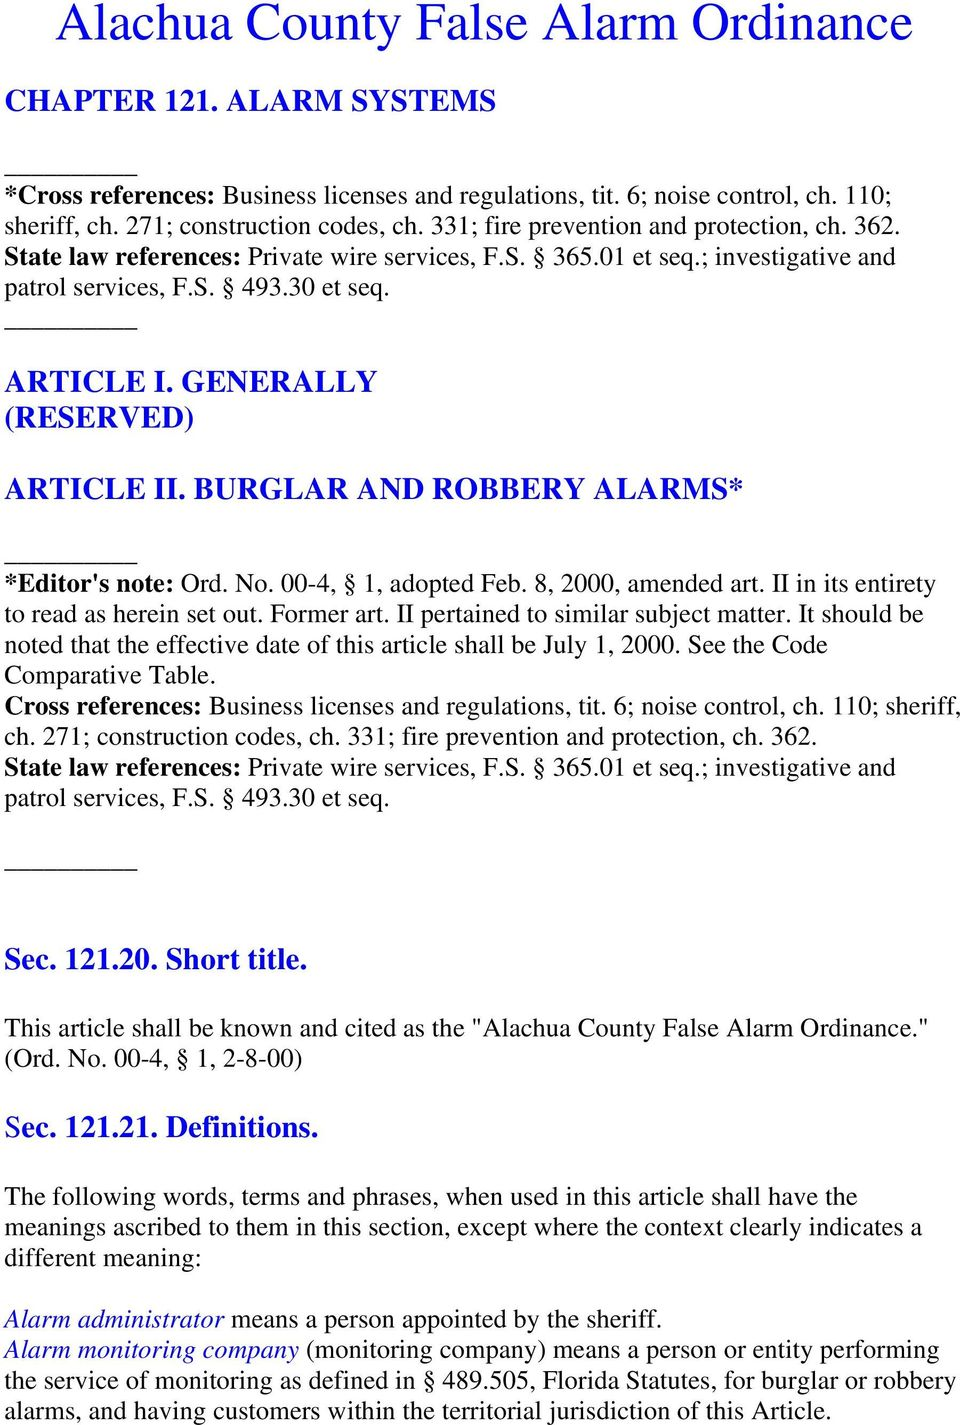 GENERALLY (RESERVED) ARTICLE II. BURGLAR AND ROBBERY ALARMS* *Editor's note: Ord. No. 00-4, 1, adopted Feb. 8, 2000, amended art. II in its entirety to read as herein set out. Former art.